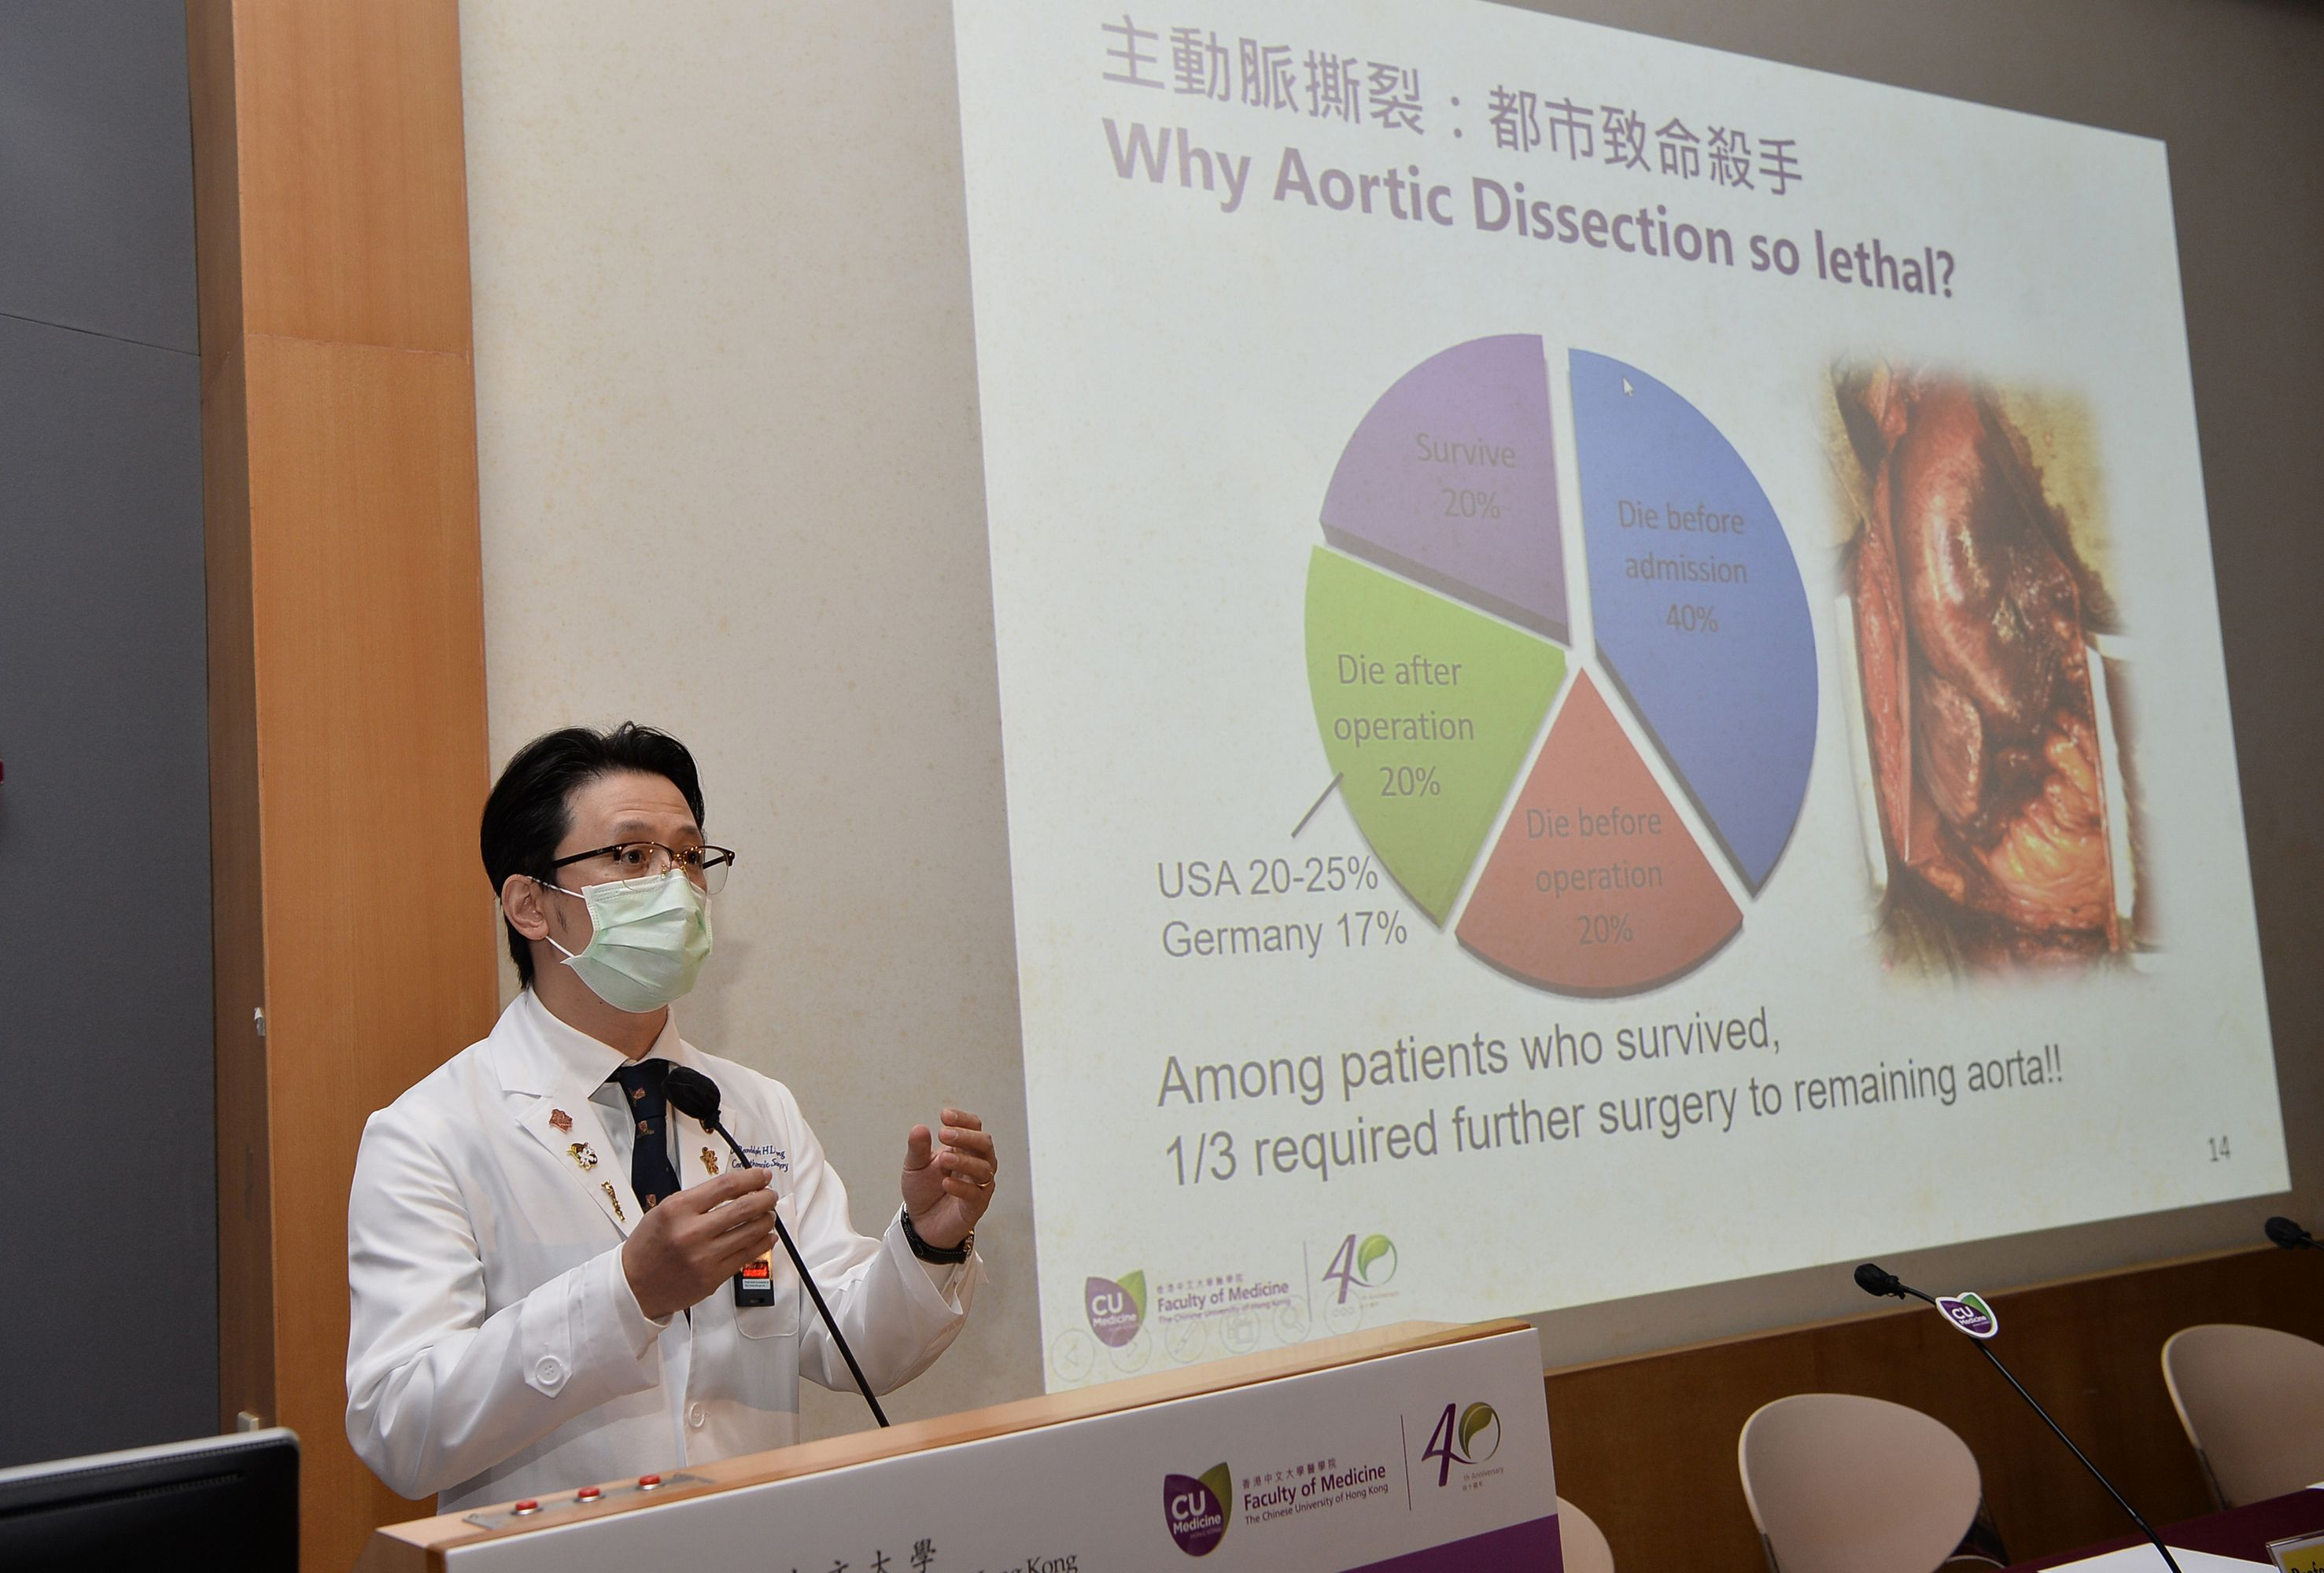 Dr. Randolph Hung Leung WONG says aortic aneurysm is a silent killer as 95% of cases carry no symptoms. Complications such as aorta dissection and rupture can result in life-threatening bleeding or sudden death.